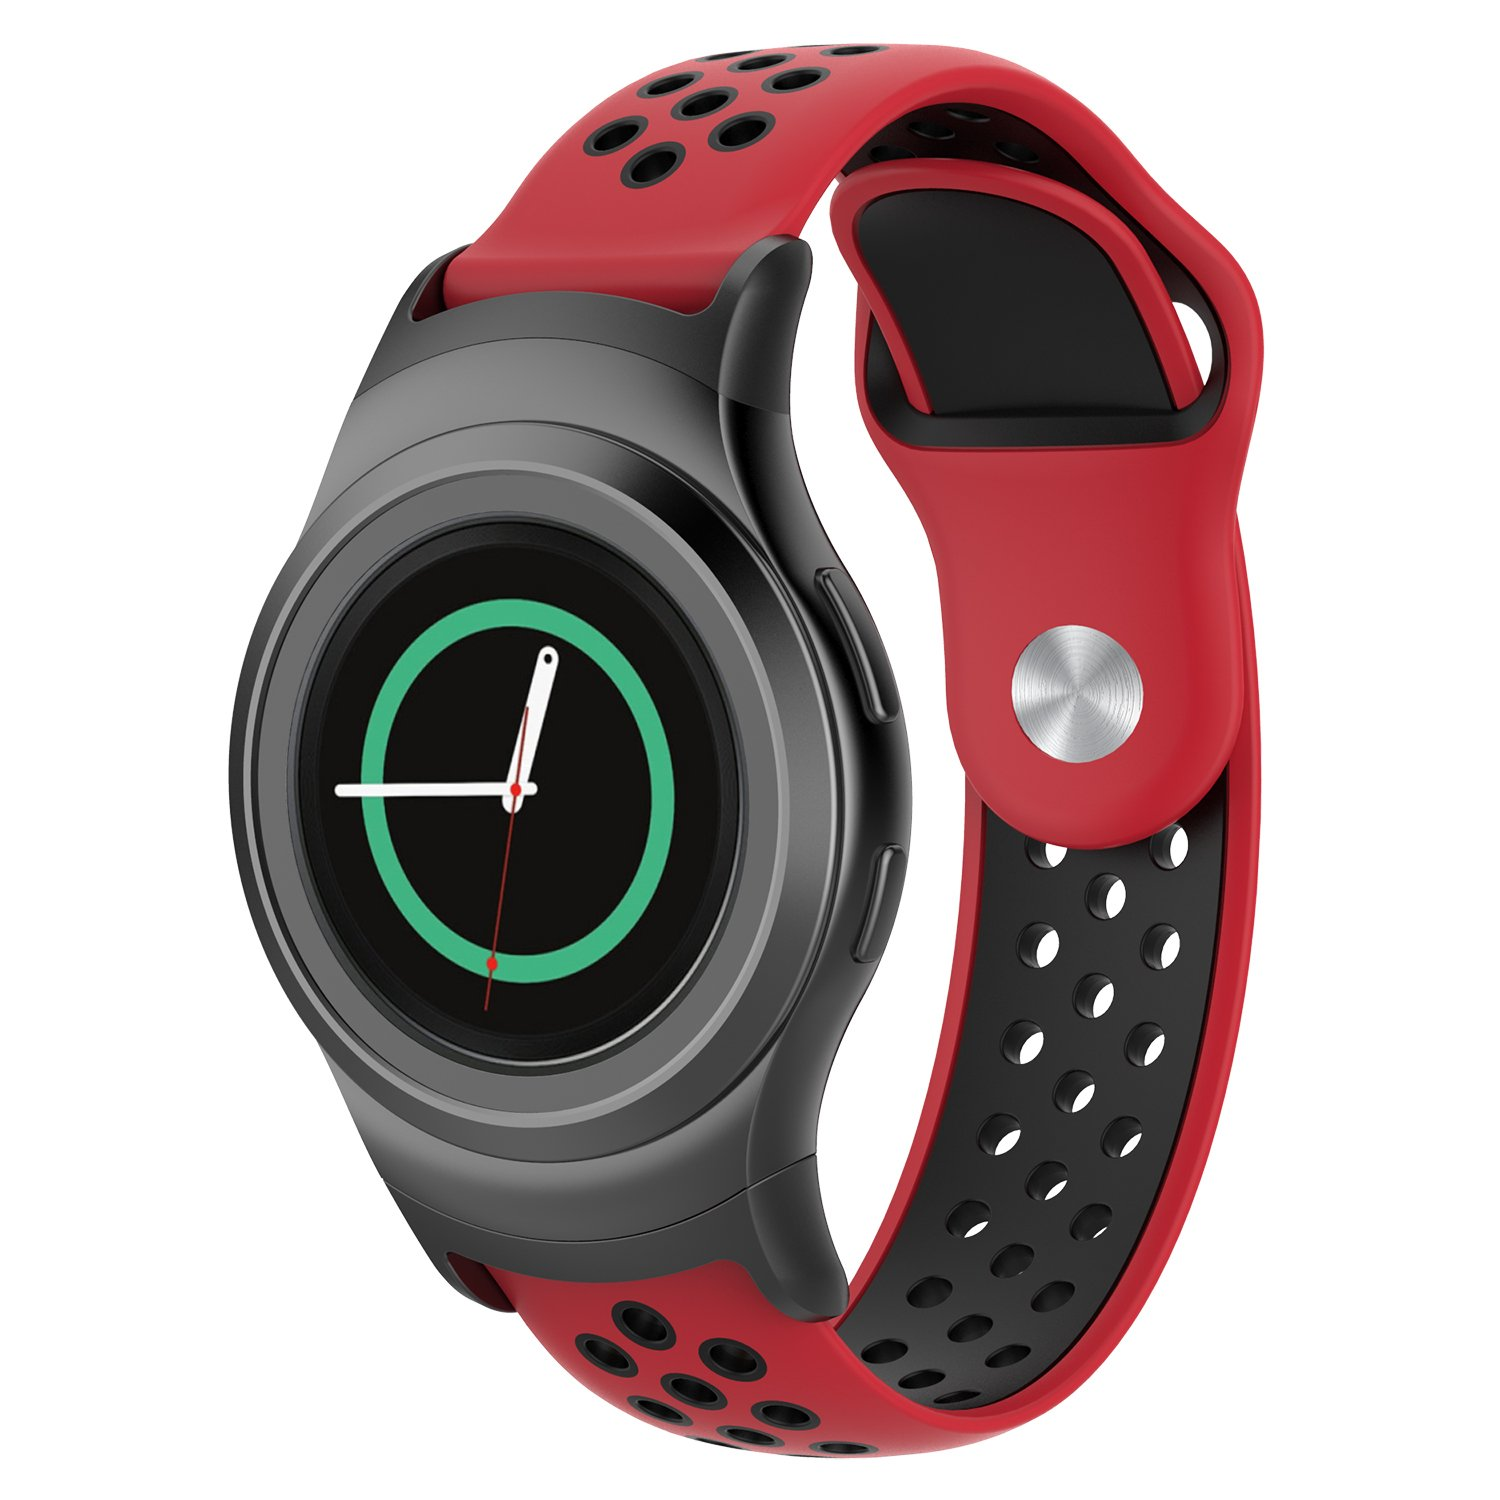 FUNKID Band for Samsung Gear S2 Smartwatch SM-R720/R730 Replacement Strap with Stainless Metal Adapters Connecter Black Red